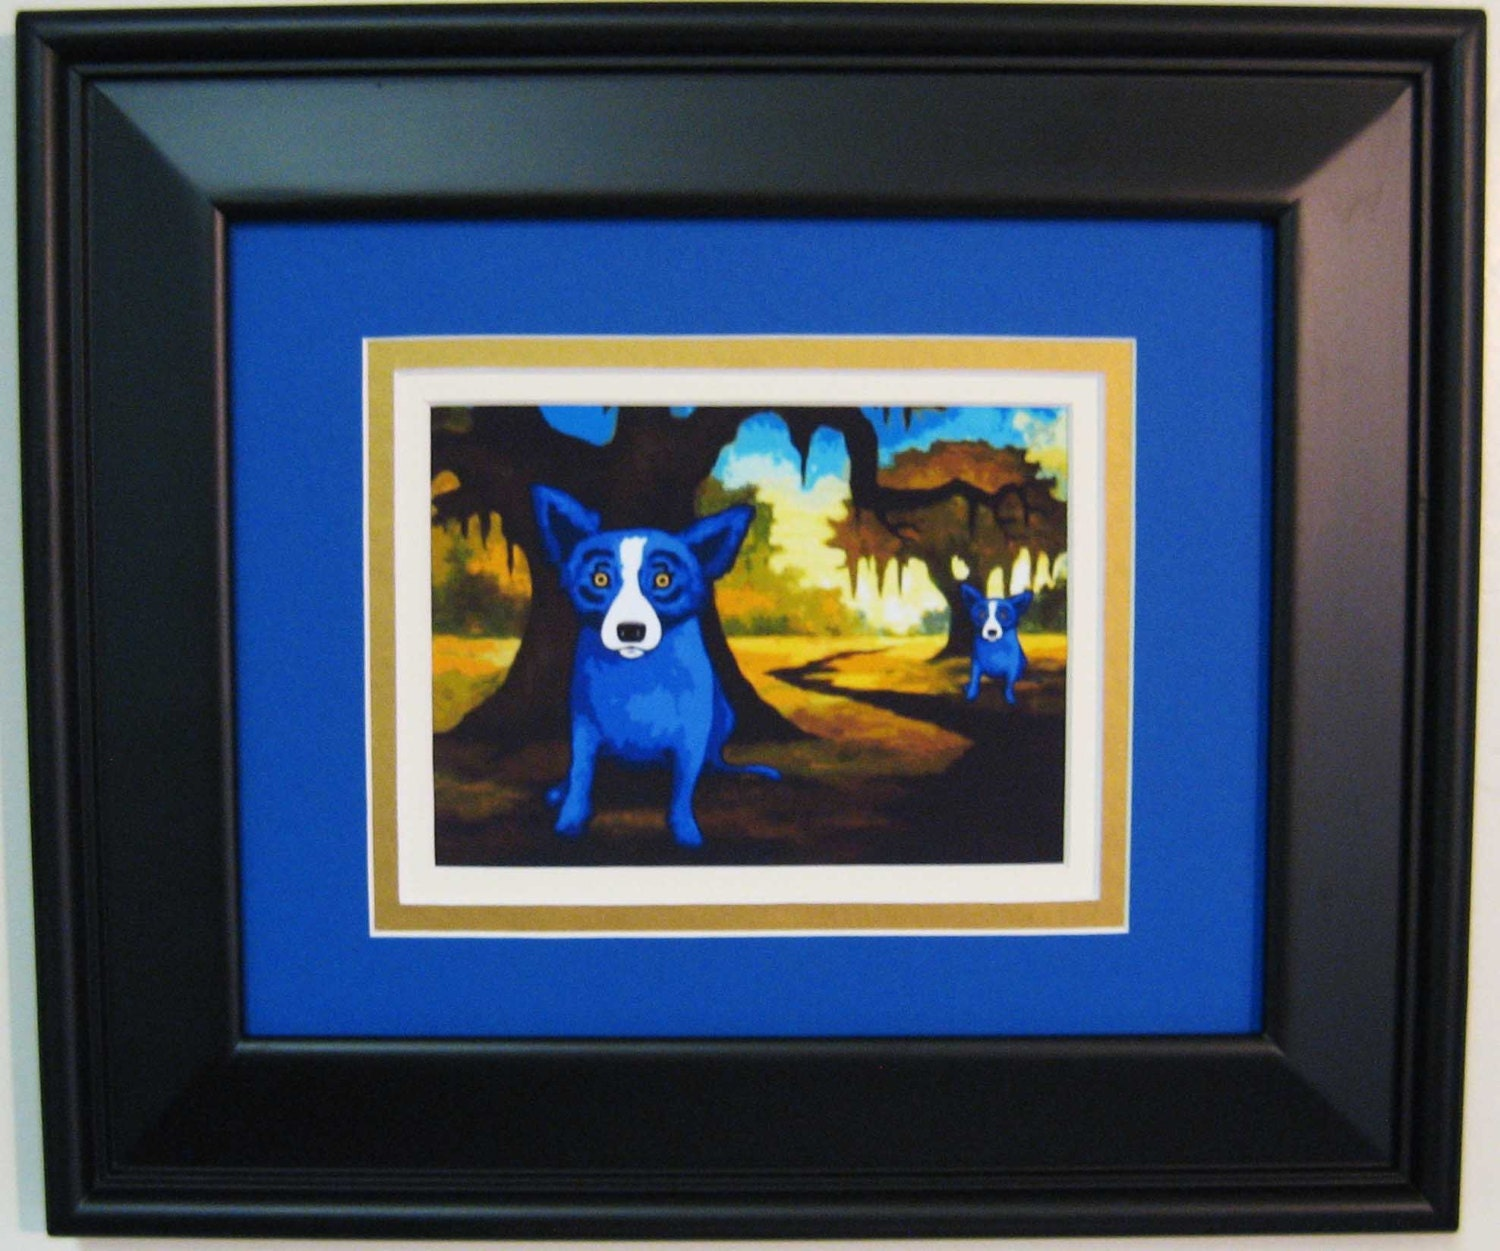 george rodrigue blue dog she lived across the bayou promotional postcard triple matted and framed 135 x 115 overall size